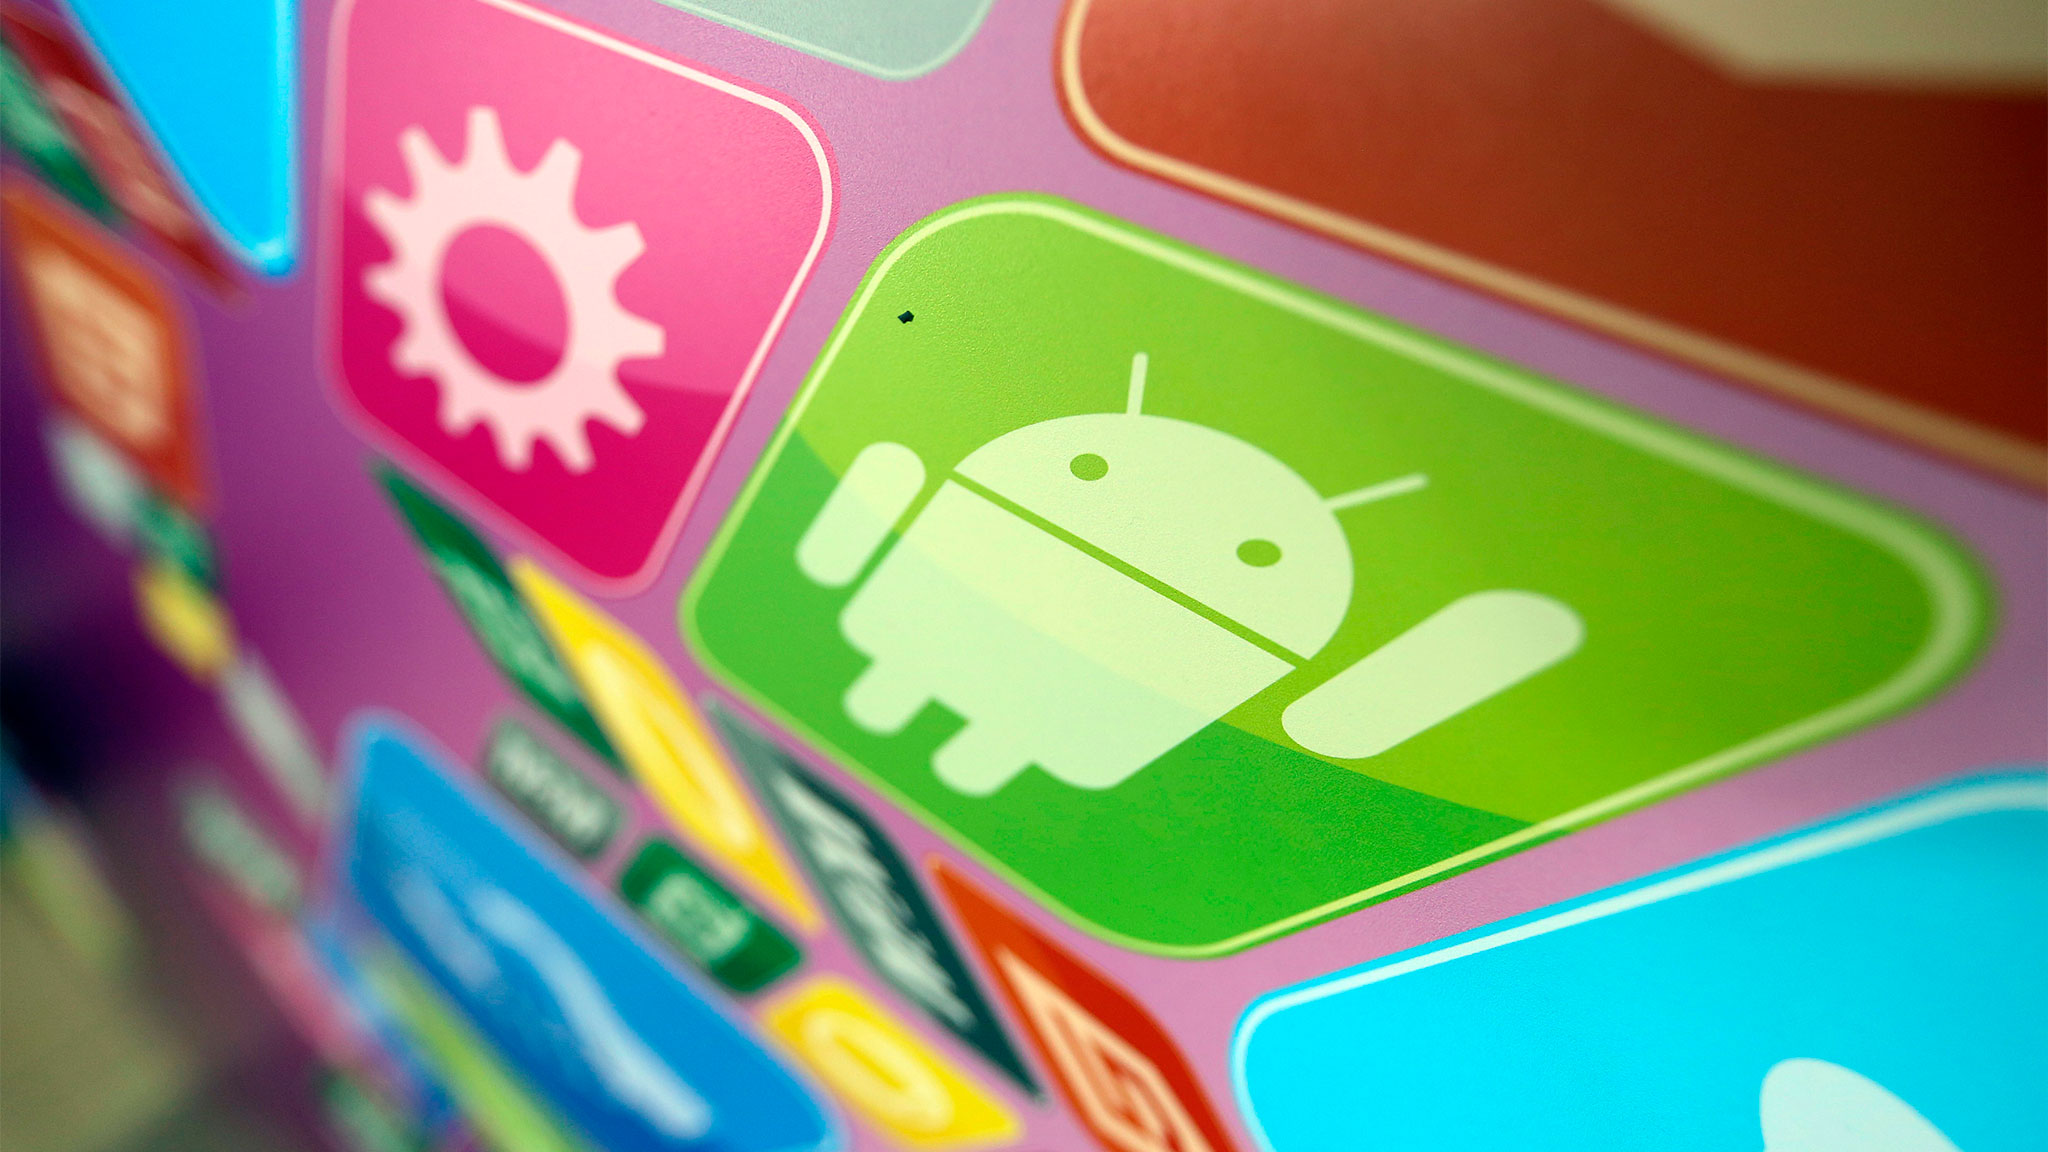 Android wars are raging as rivals challenge Google's dominance